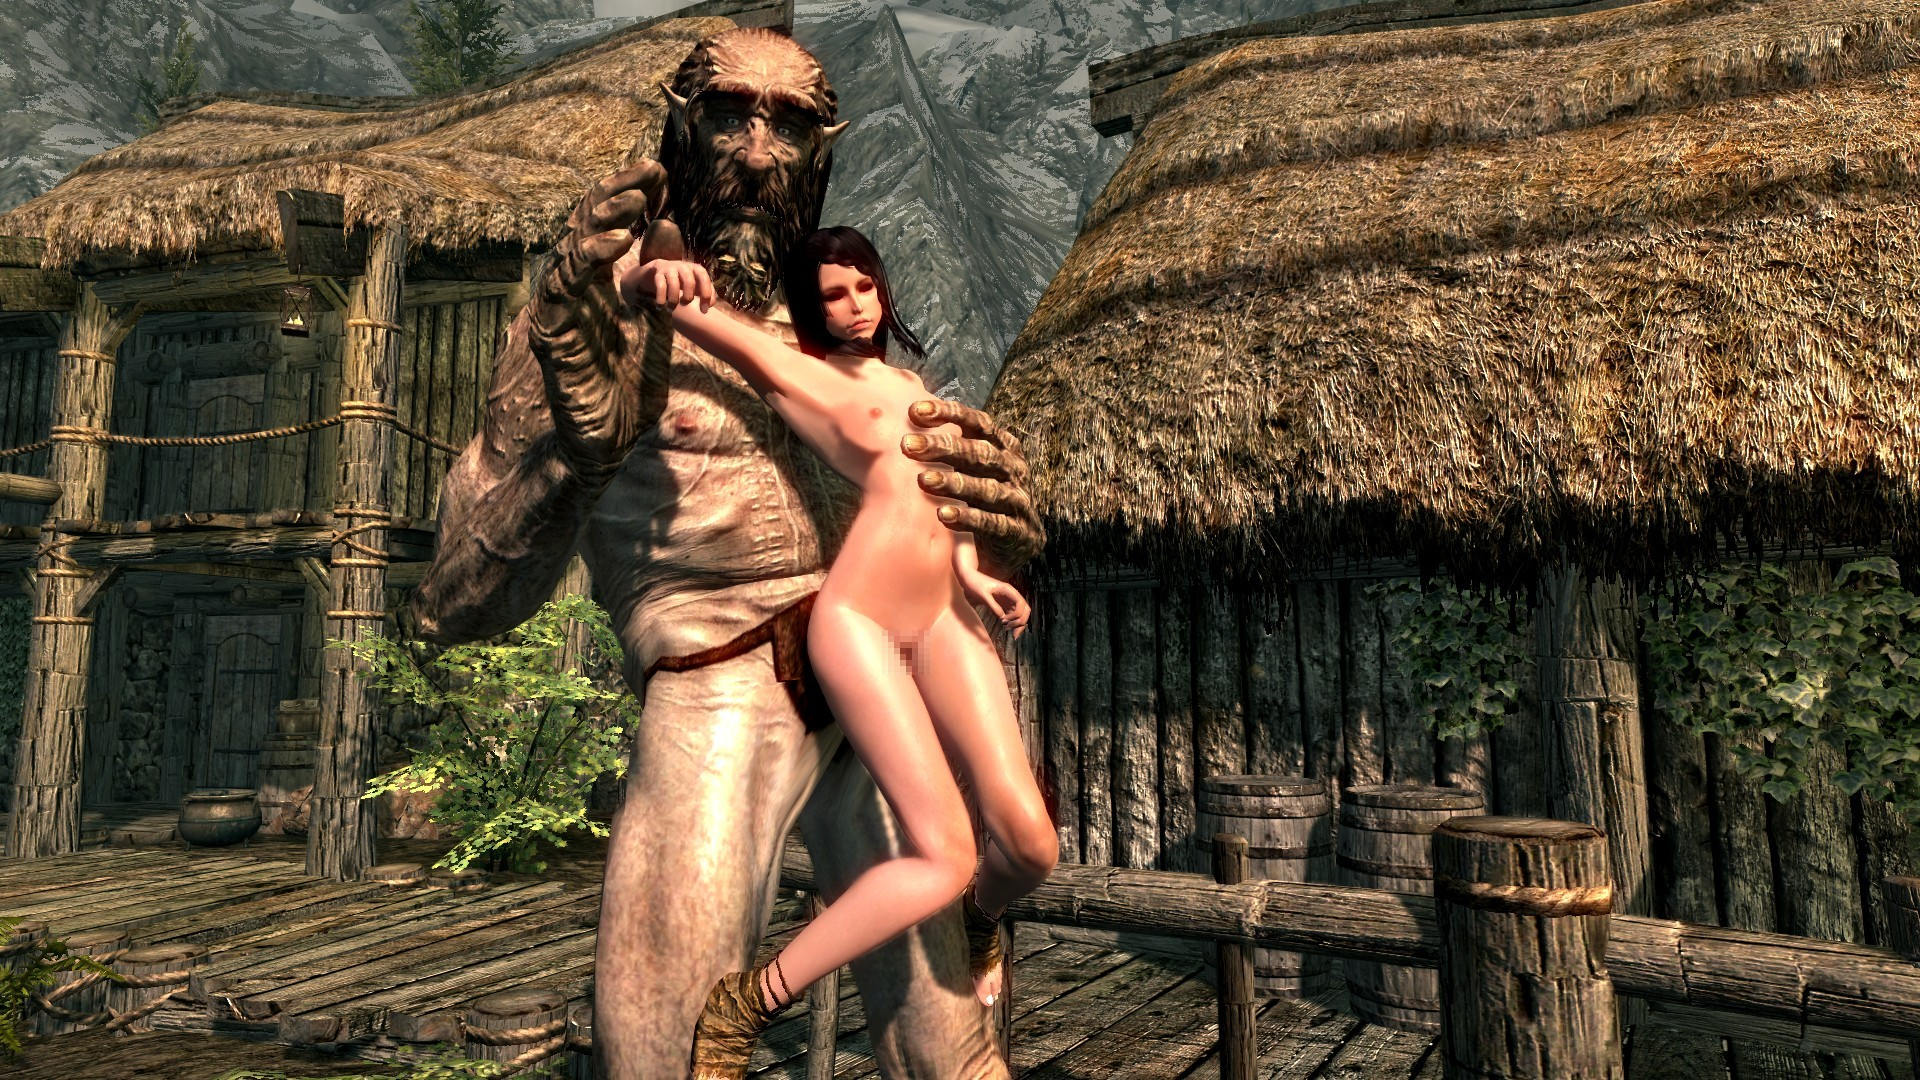 Naked pic of skyrim women and sex hentia scene